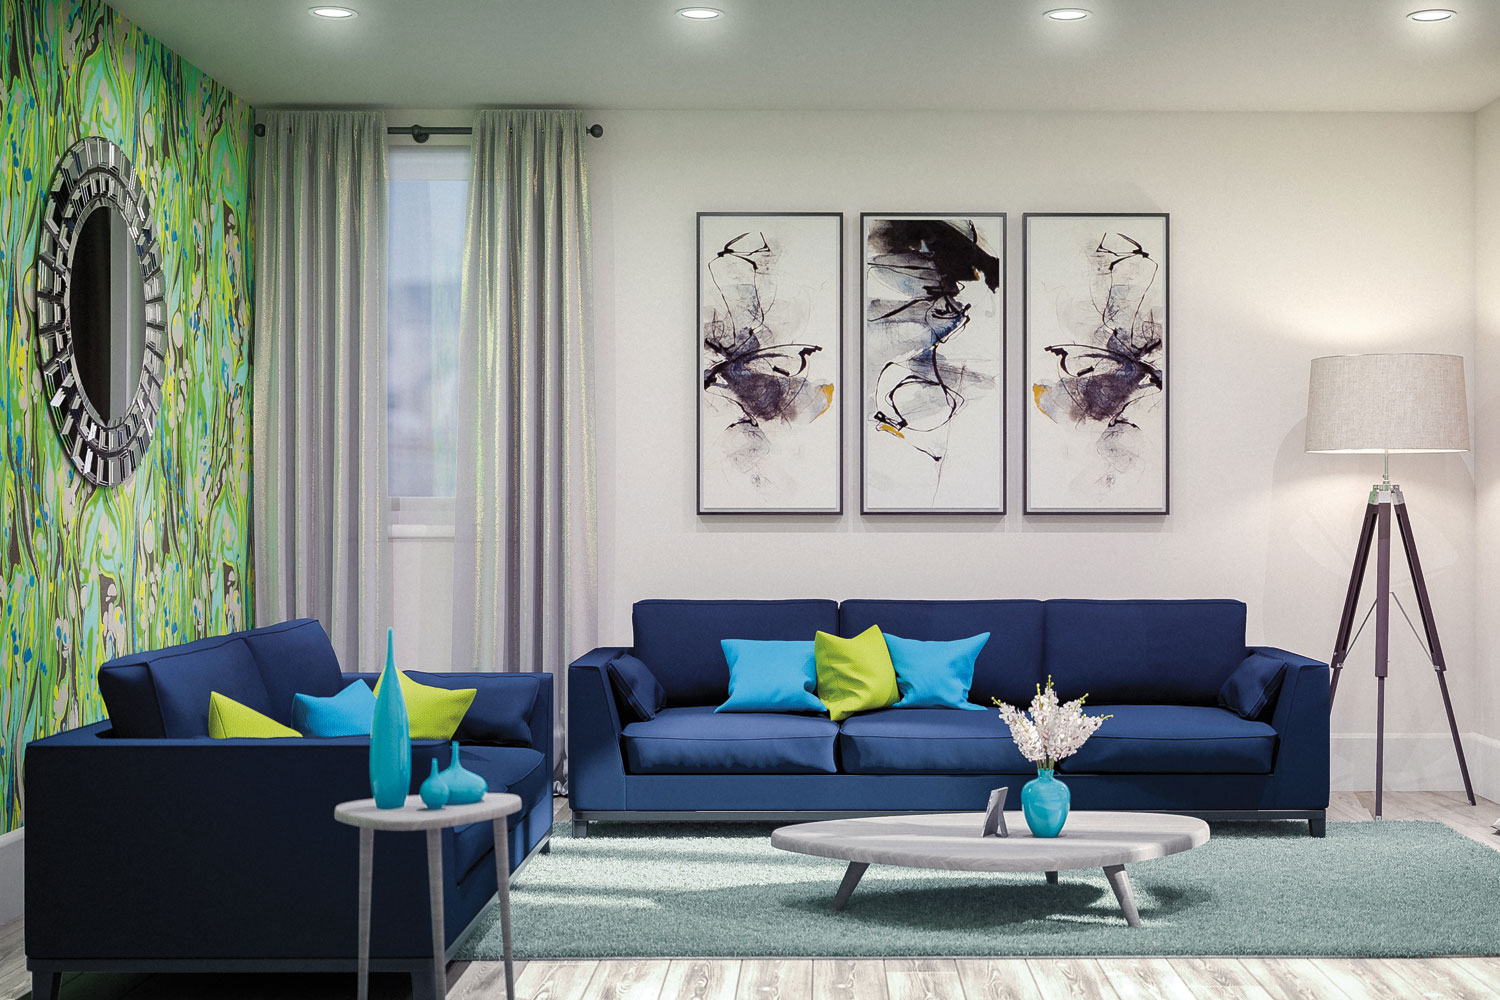 MOH9752_TheHeights_Interior_4.jpg